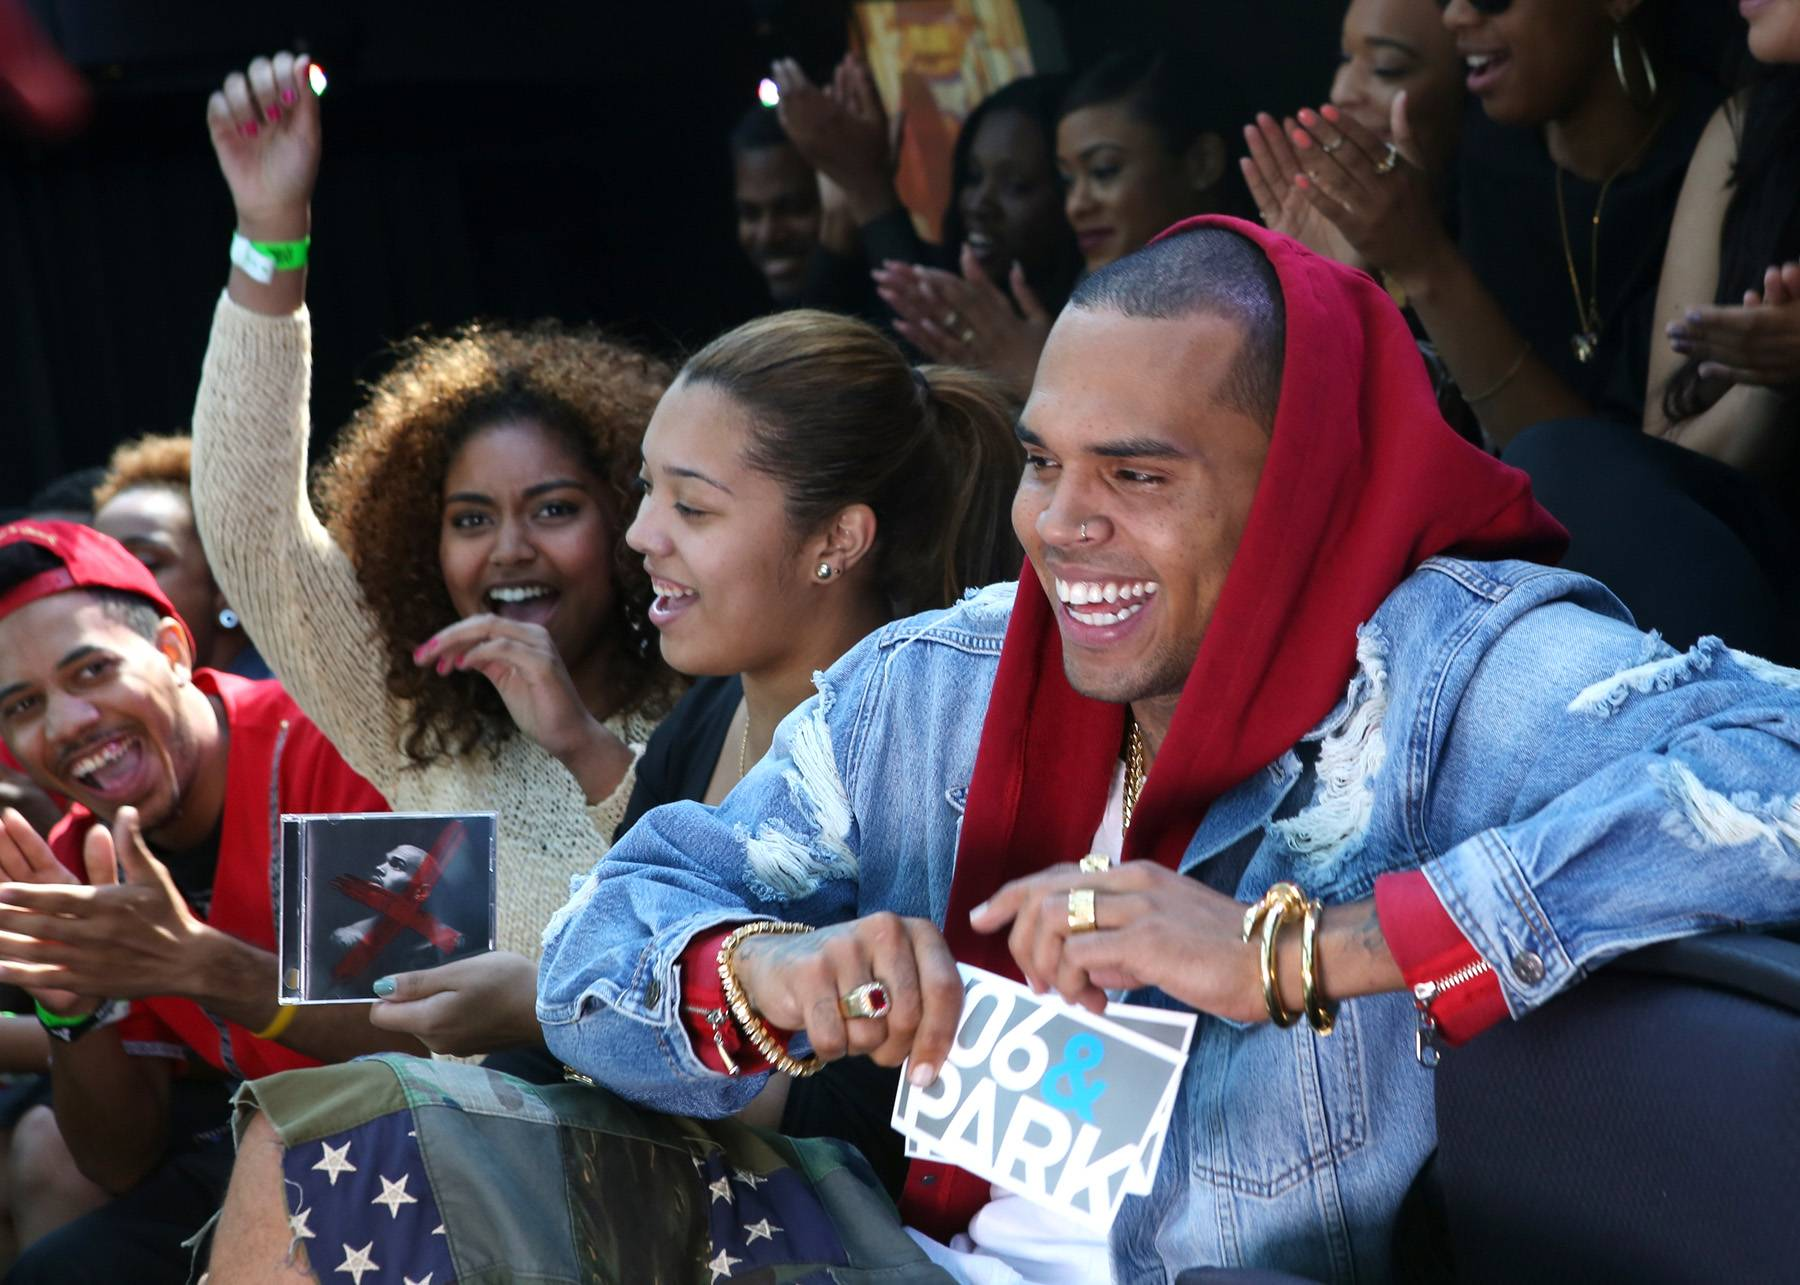 All Smiles - (Photo: Bennett Raglin/BET/Getty Images for BET)